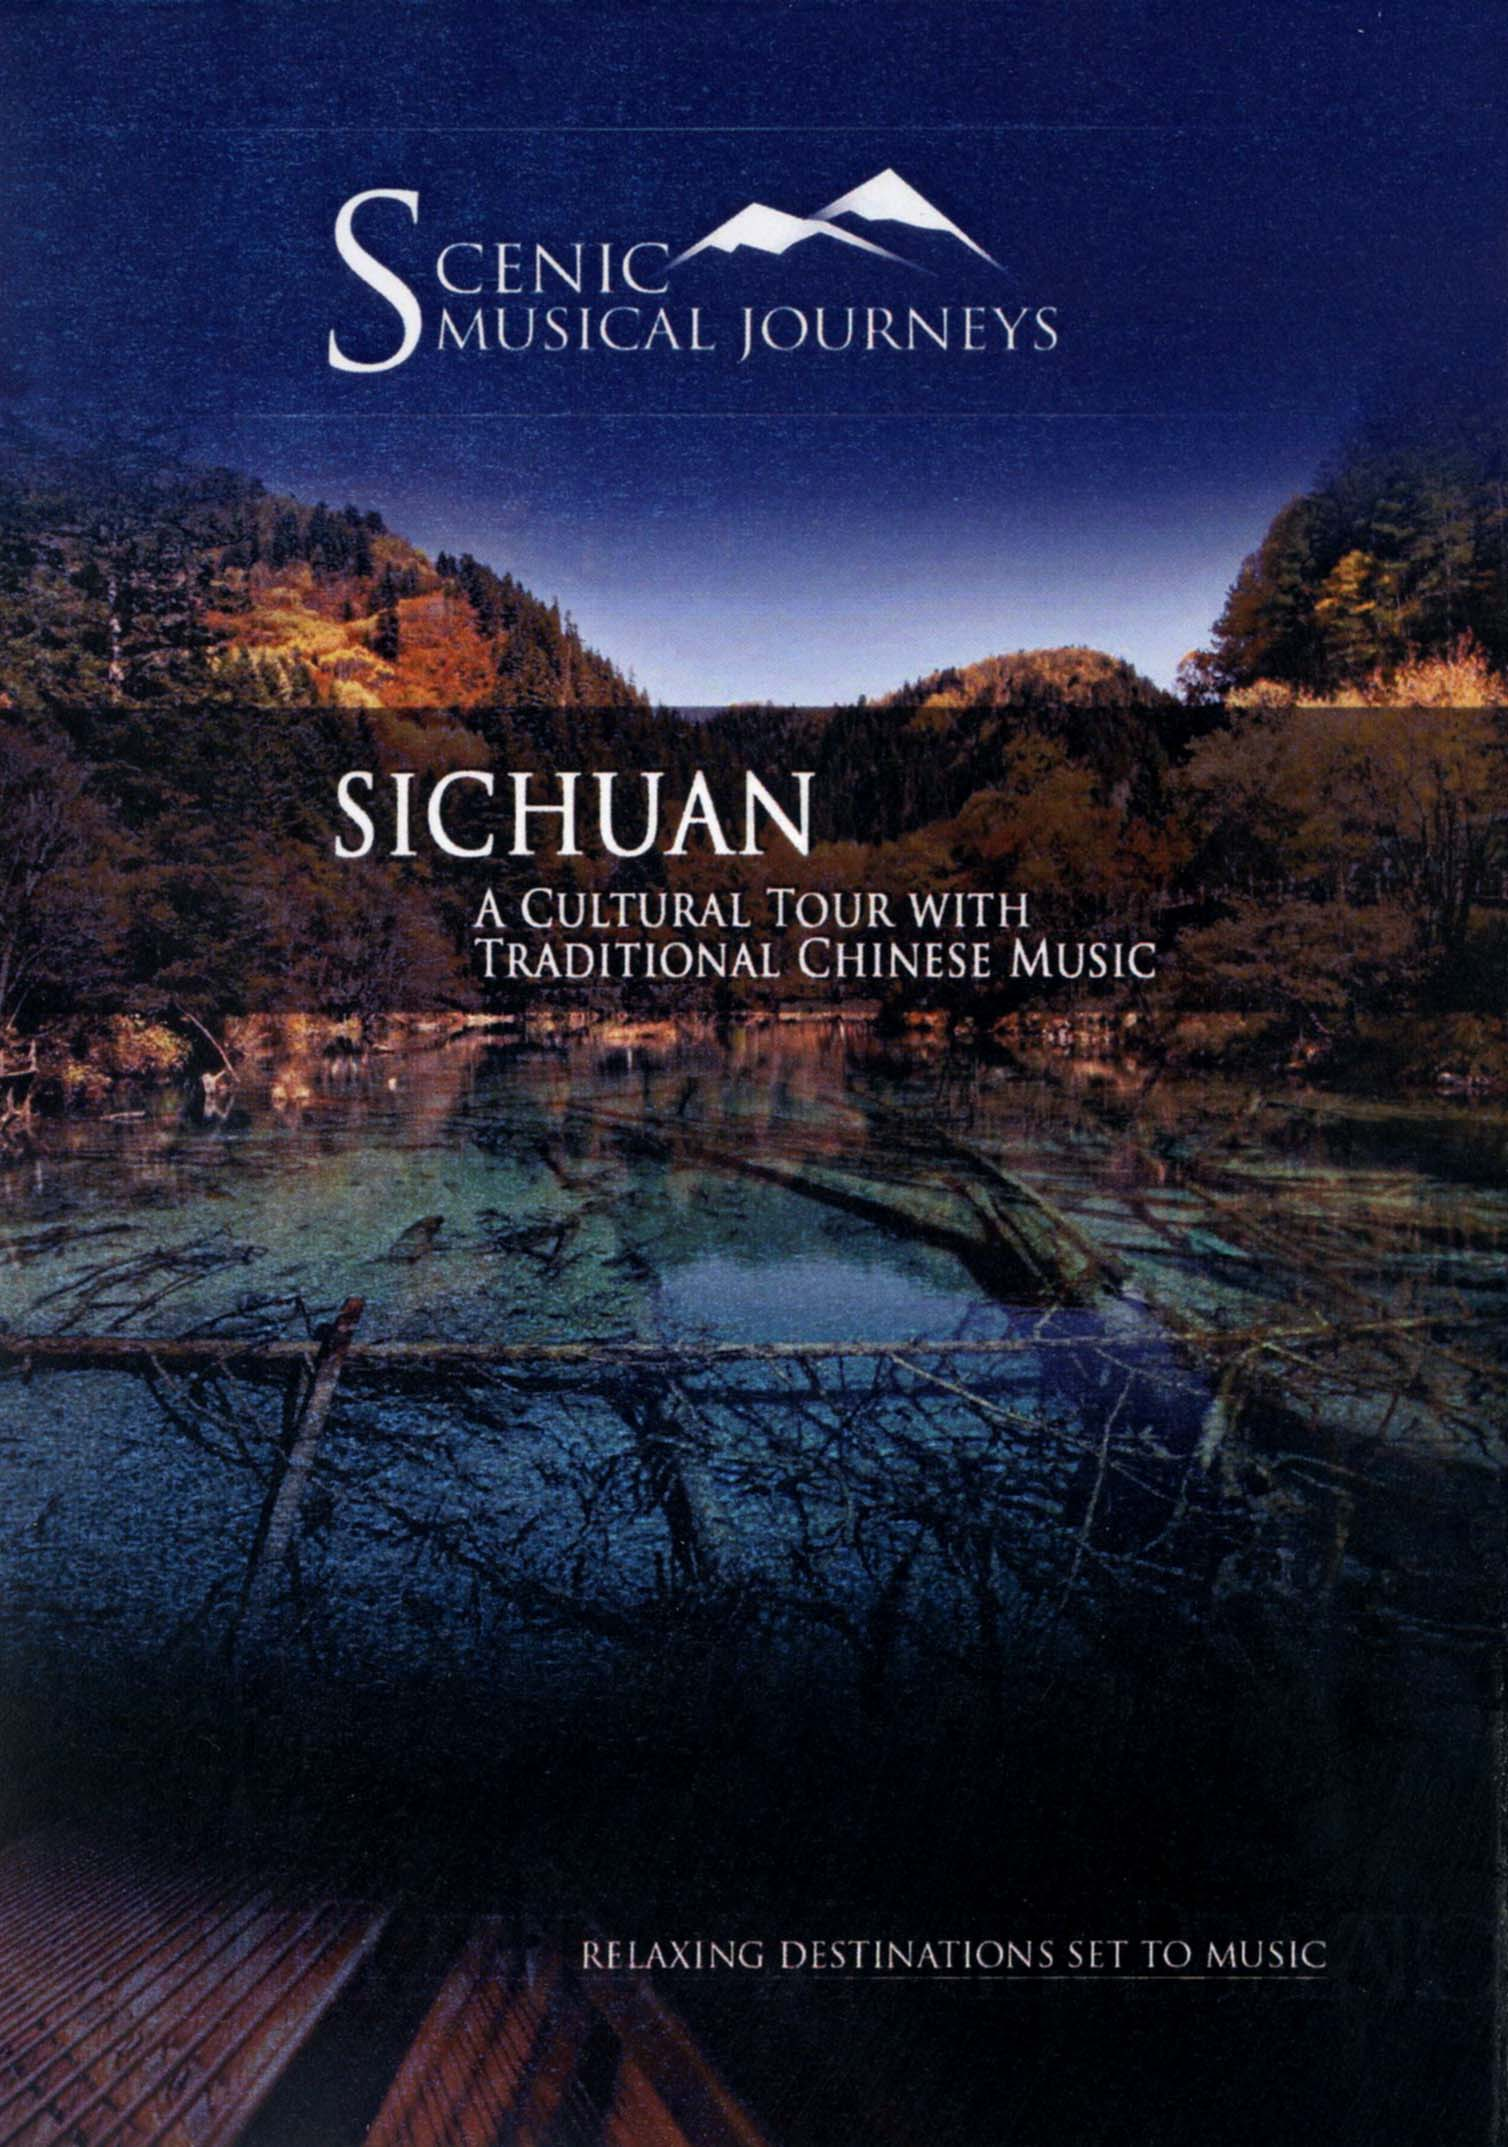 Scenic Musical Journeys: Sichuan - A Cultural Tour With Traditional Chinese Music